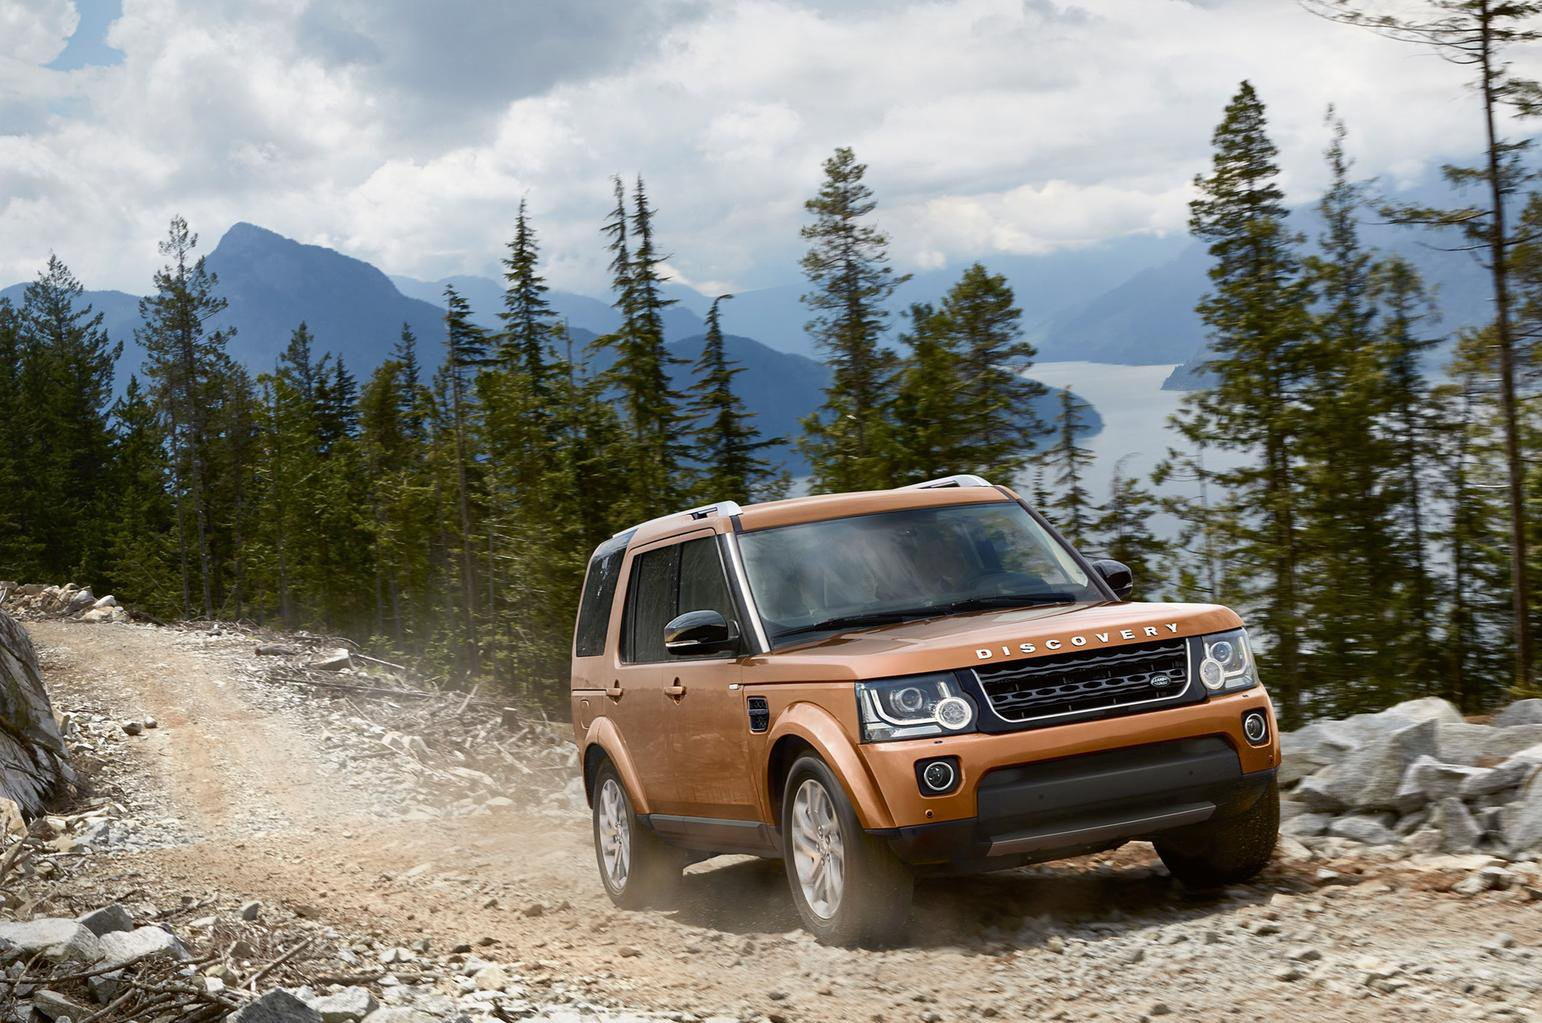 New Land Rover Discovery Landmark and Graphite trims introduced